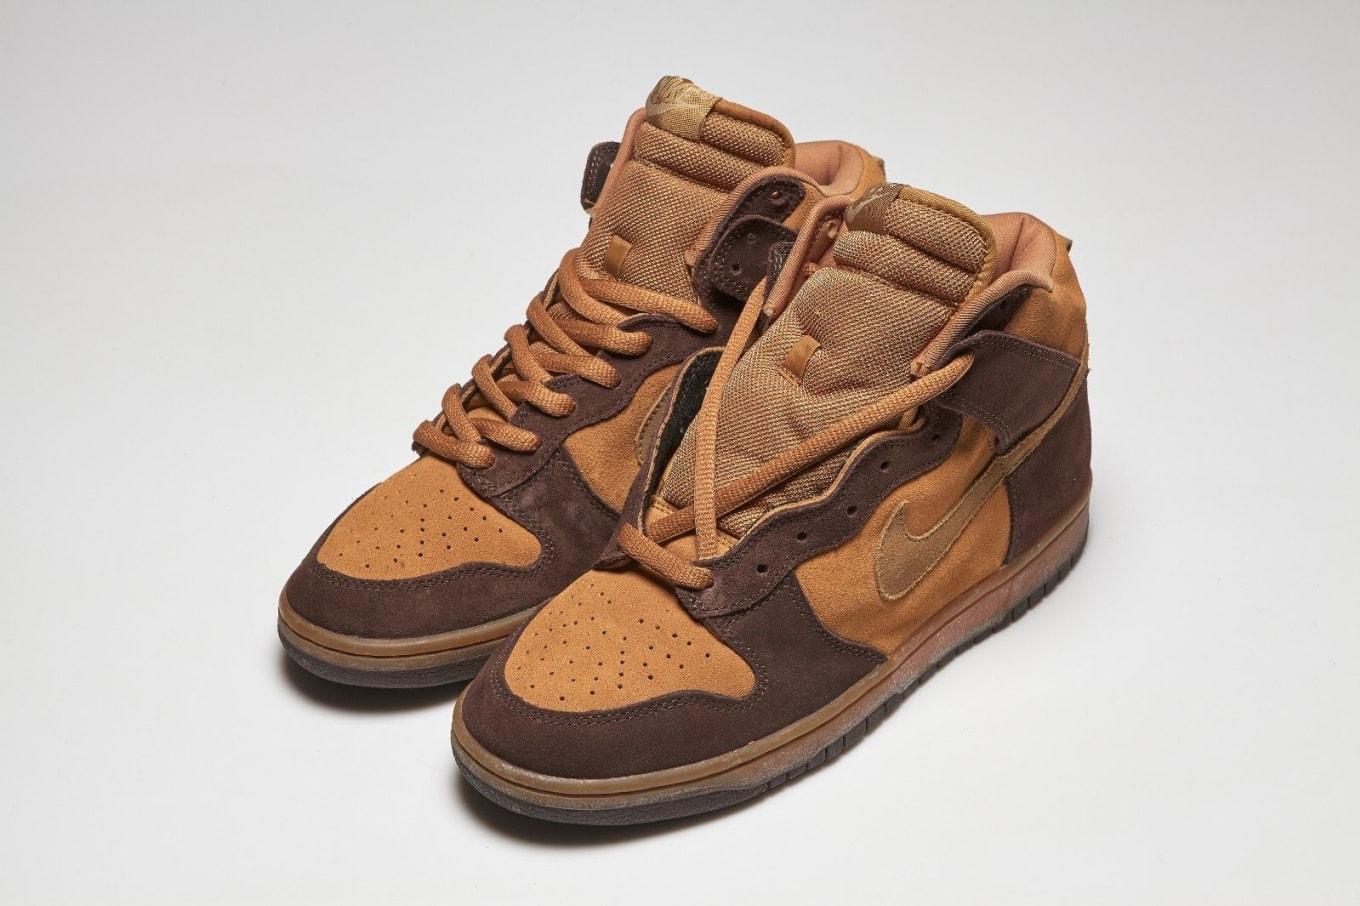 new style fc4fb e2885 Nike SB Dunk High Brown Pack